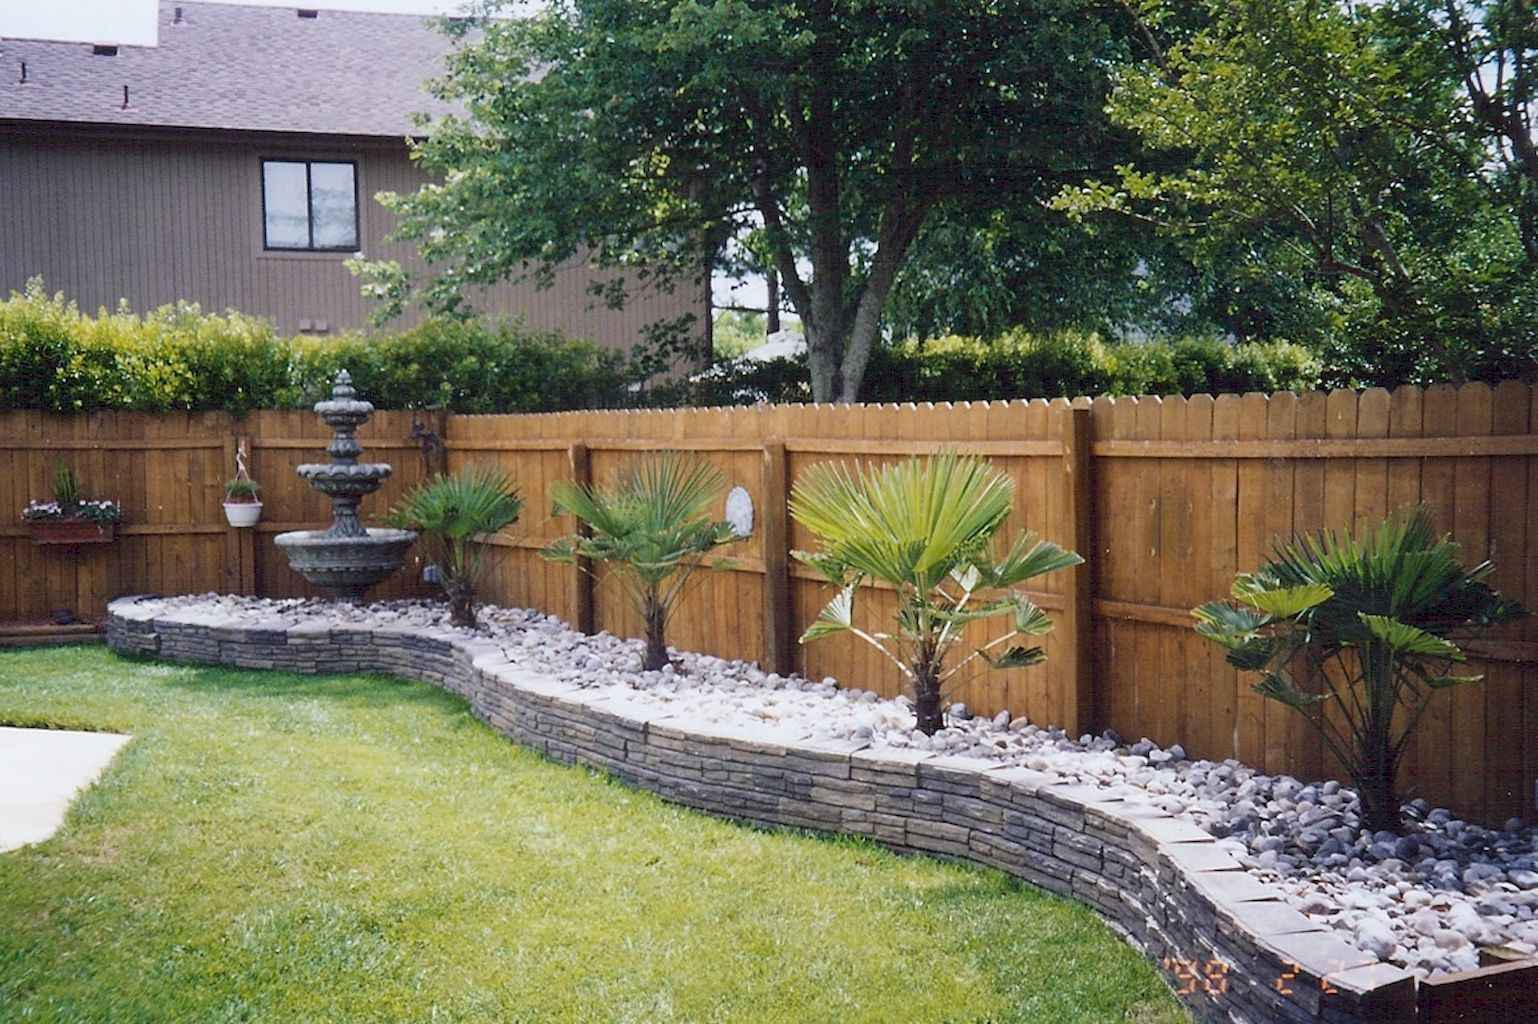 Small backyard landscaping ideas on a budget (71)